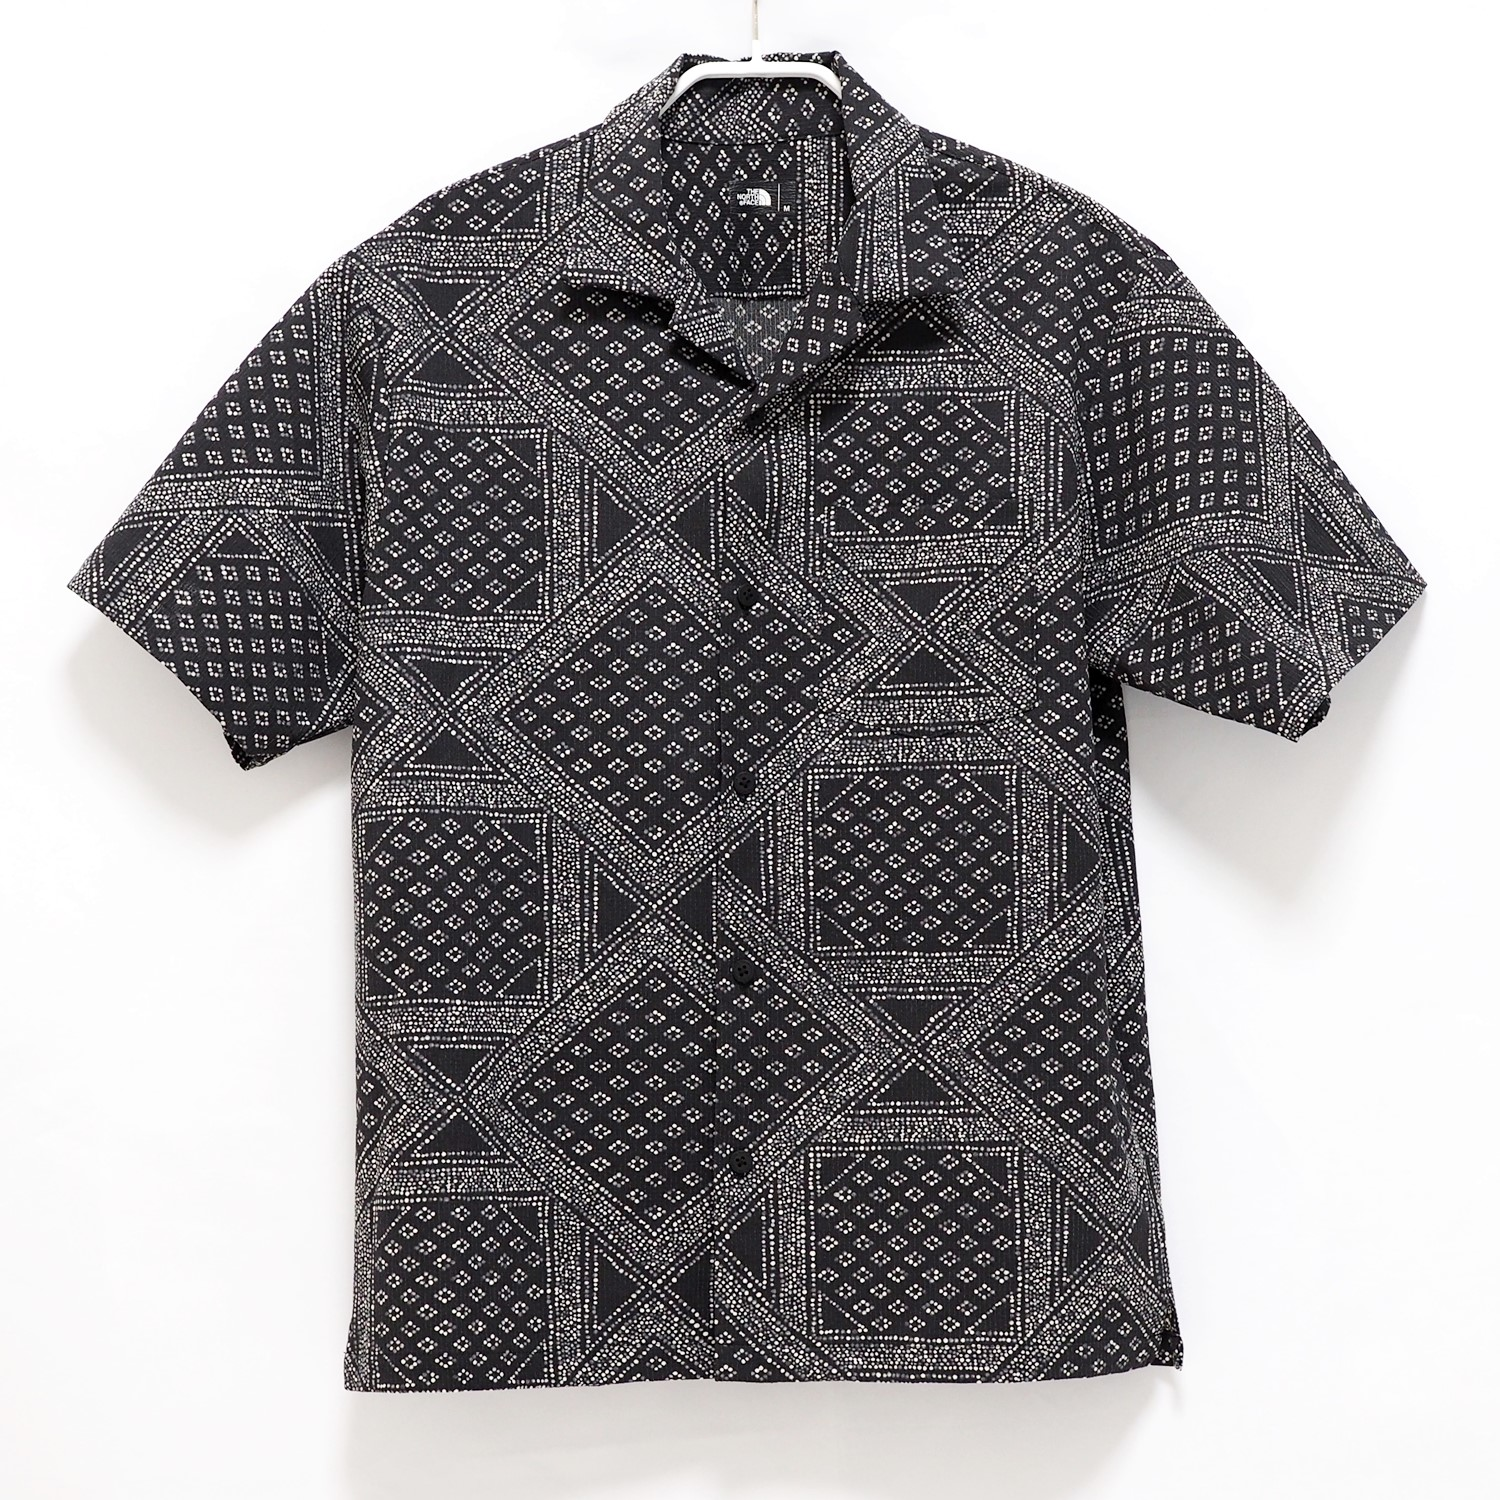 THE NORTH FACE - S/S DOT AIR SHIRT NR21805